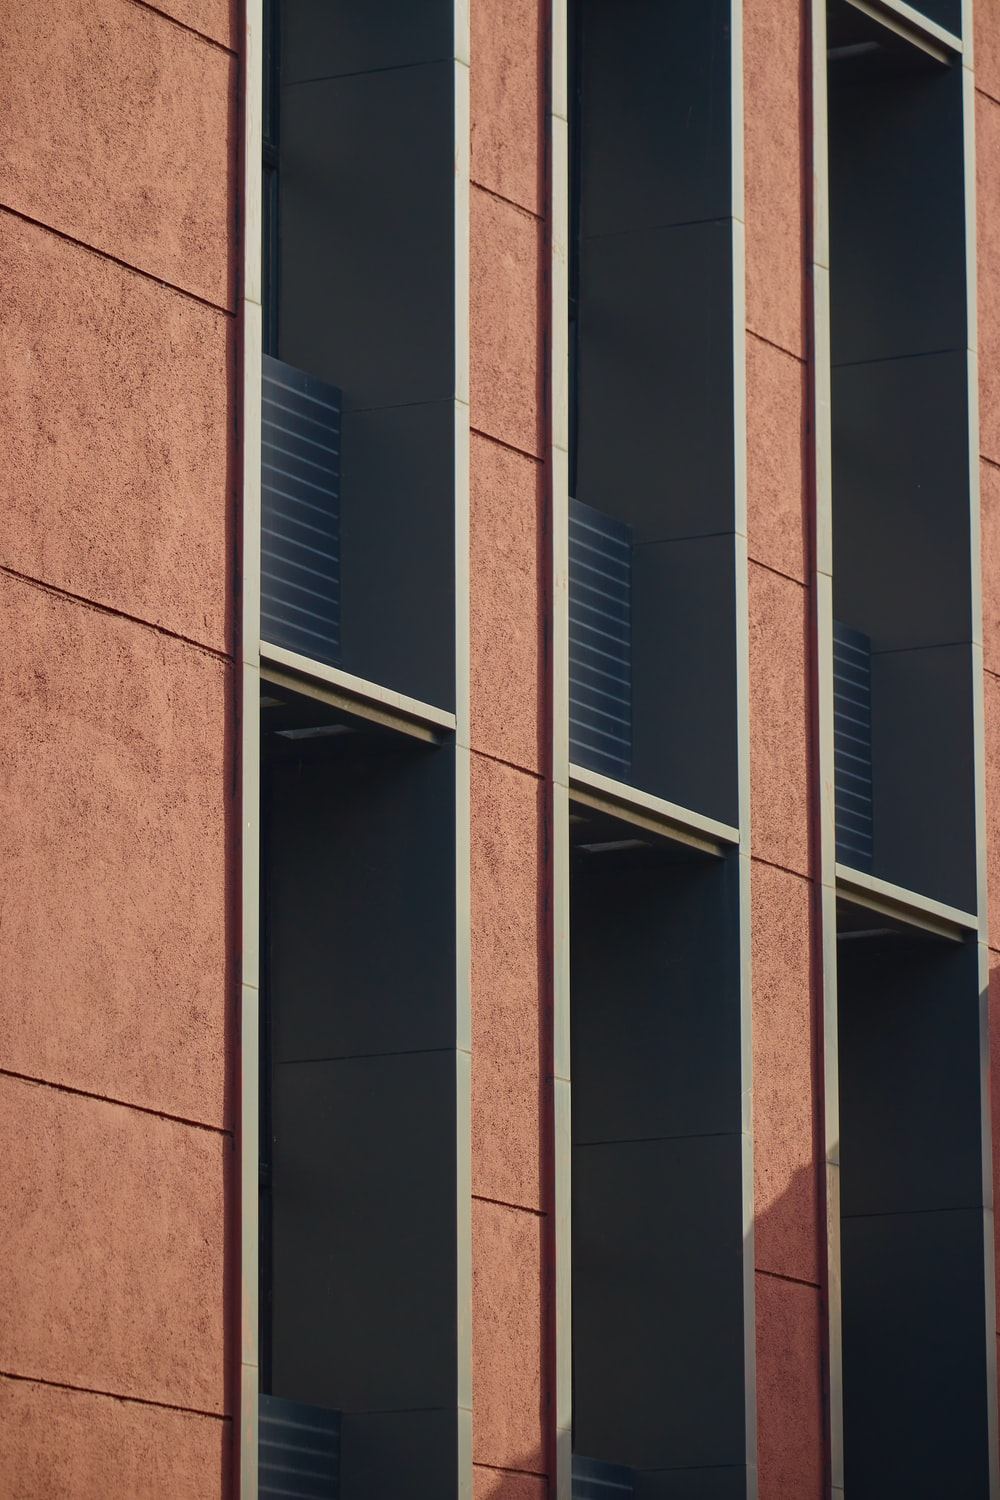 brown concrete building with glass windows